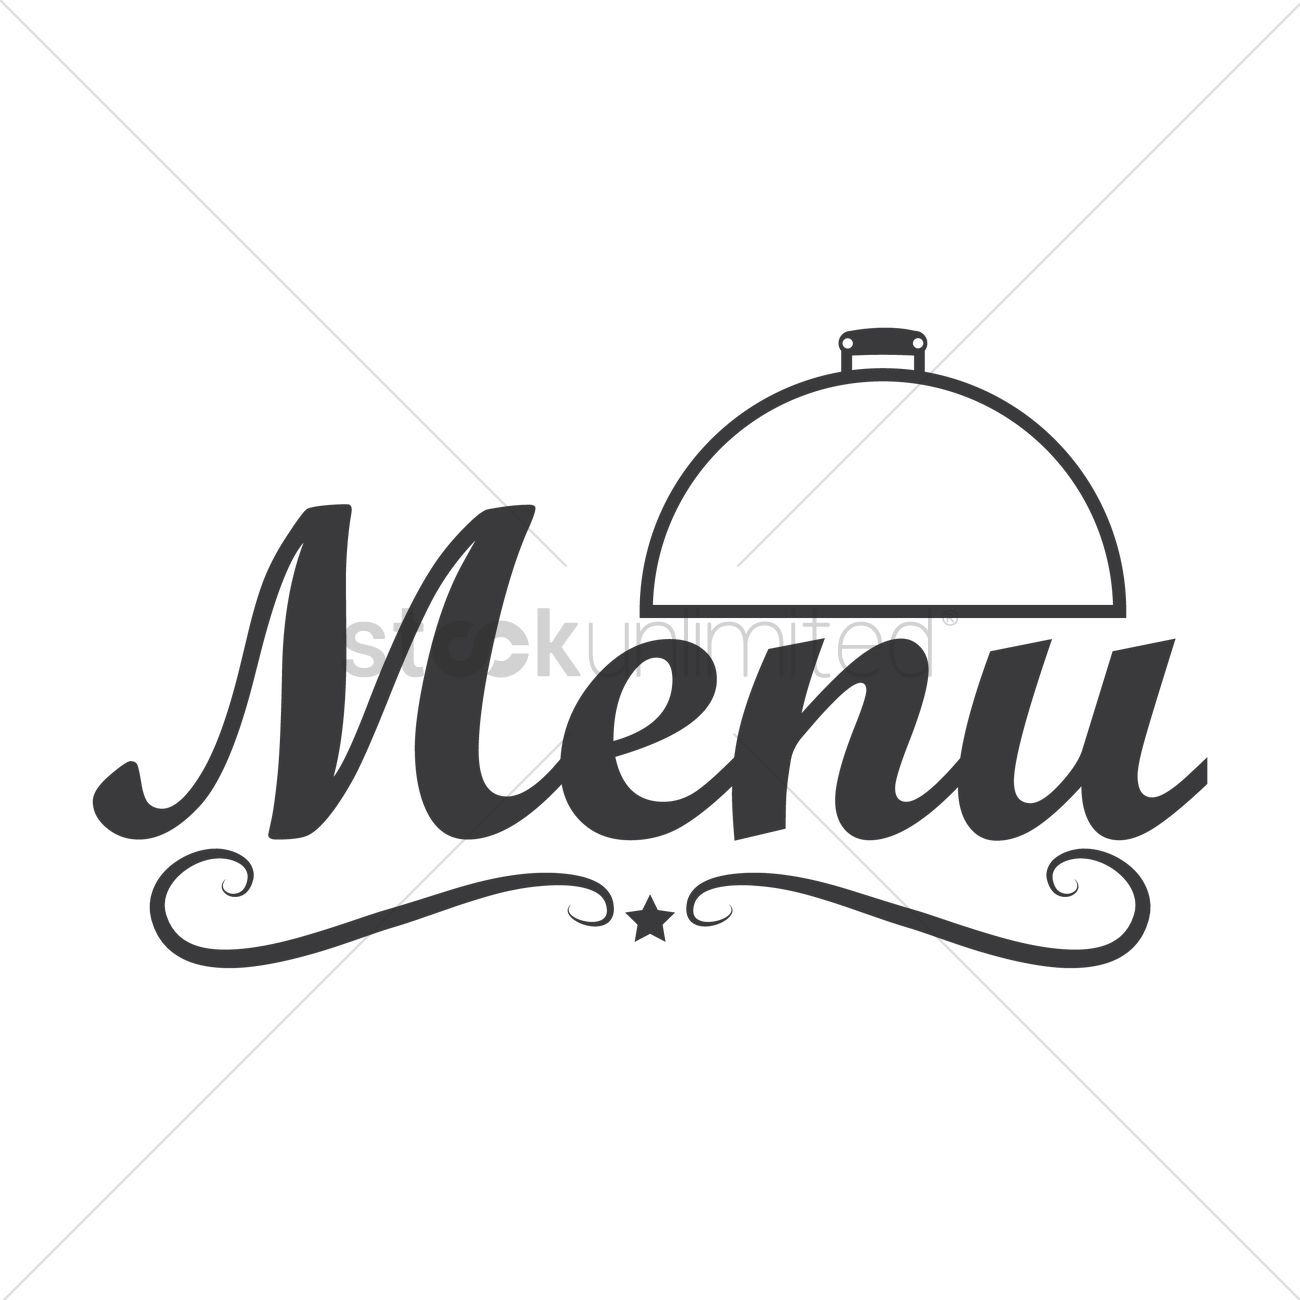 restaurant menu logo icon vector image - 1710137 | stockunlimited